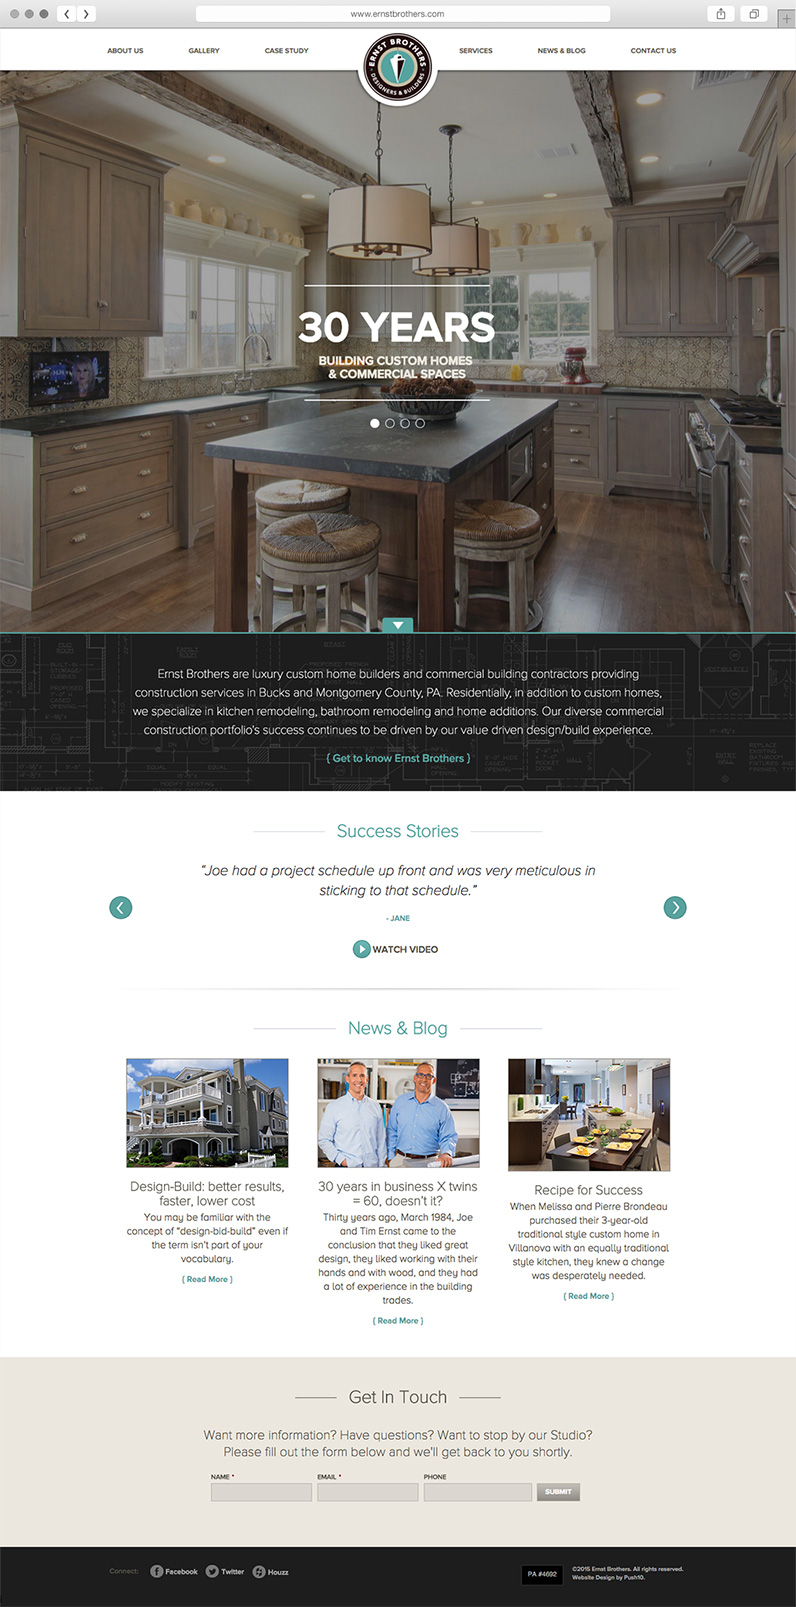 Website homepage design for Ernst Brothers Construction Company, Website Architecture for Philadelphia Construction Company, ernst brothers, ernst brothers construction, push10, web design, graphics, branding, web development, responsive web design, architecture web site